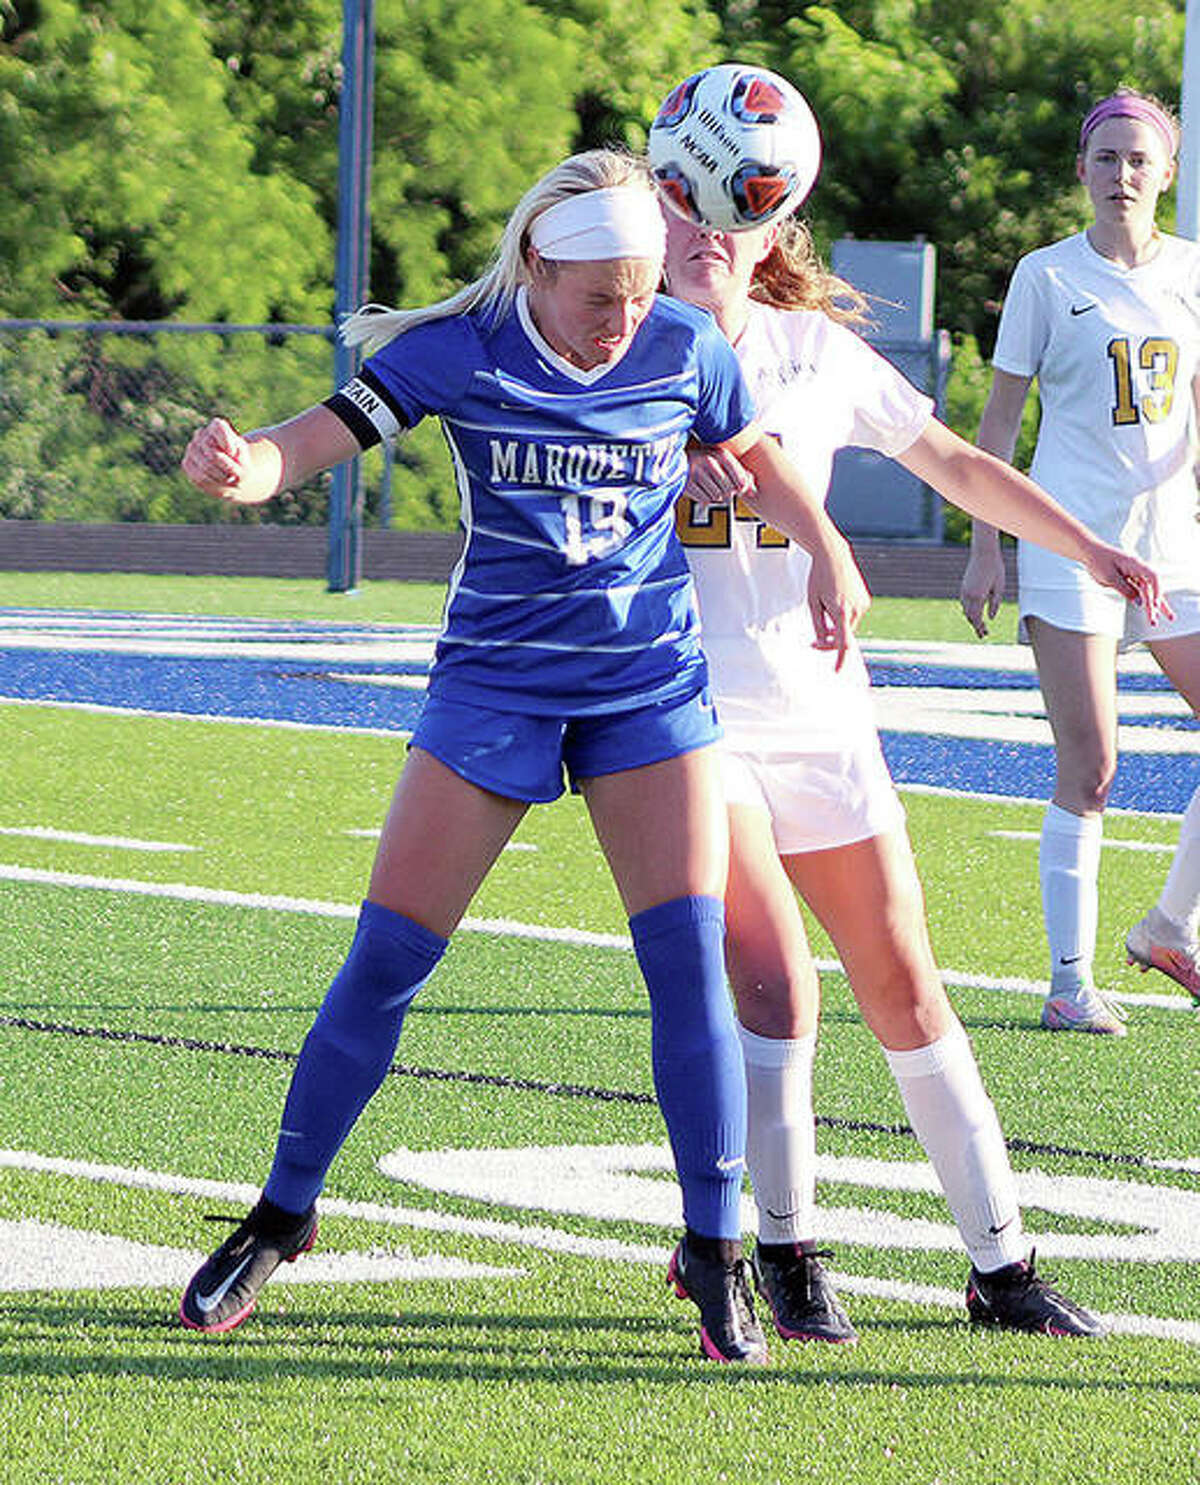 Emma Anselm of Marquette (19) and Althoff's Hope Schmitt battle for possession of the ball Tuesday at the Columbia Class 1A Super-Sectional game.